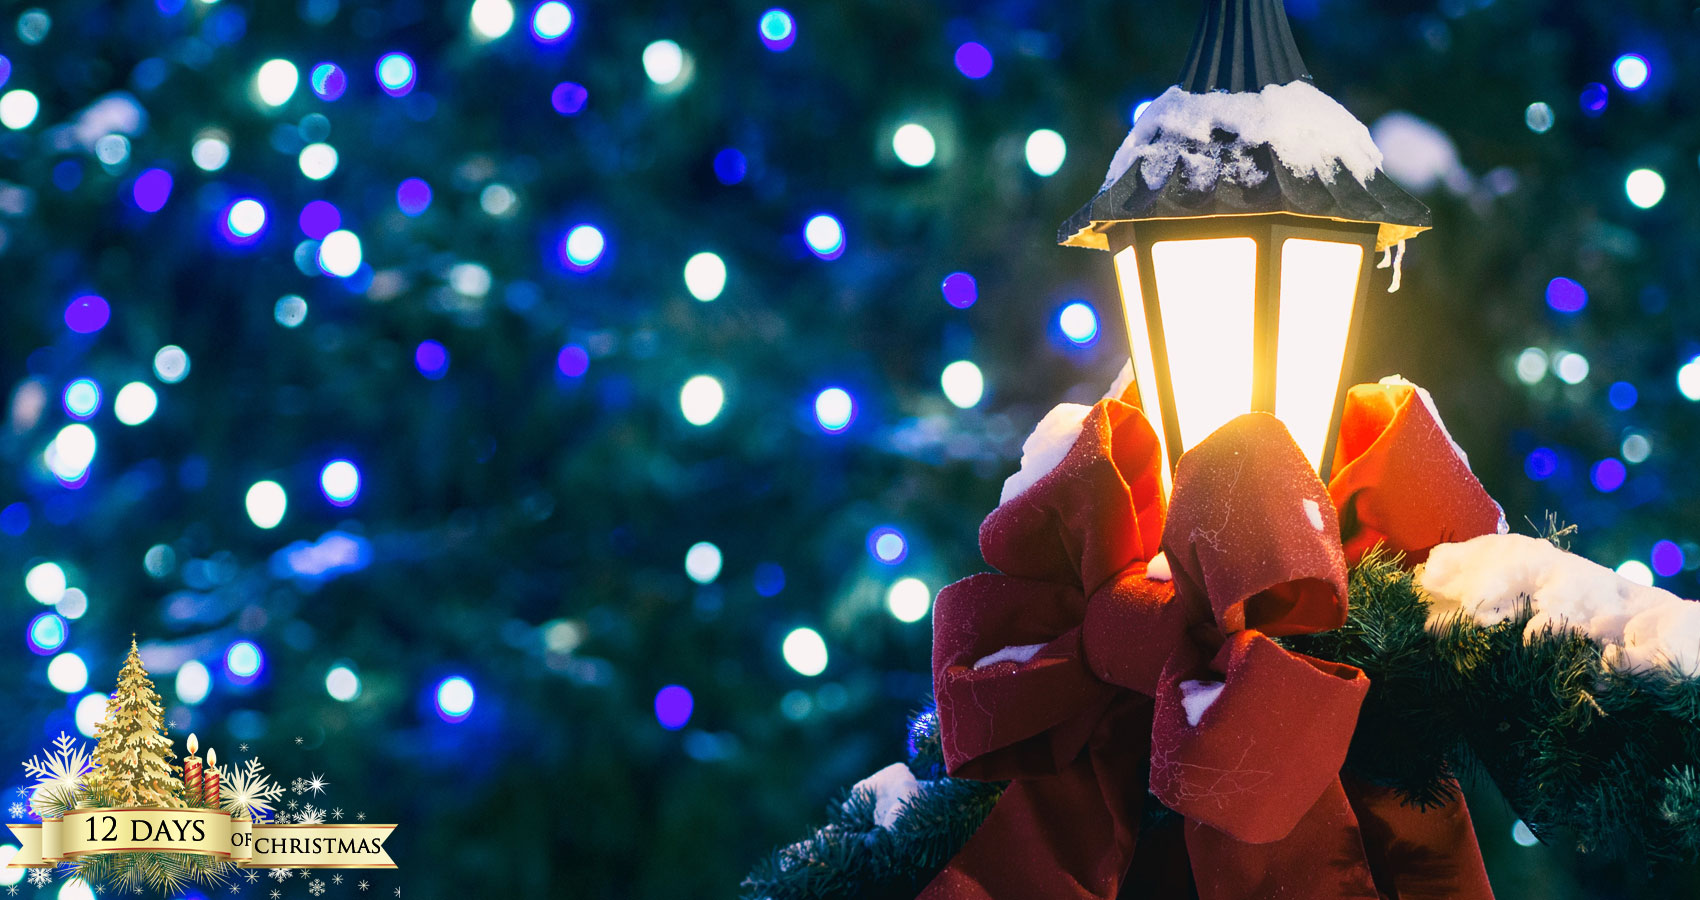 The Spirit of Christmas, a poem written by Shelly Wilson at Spillwords.com